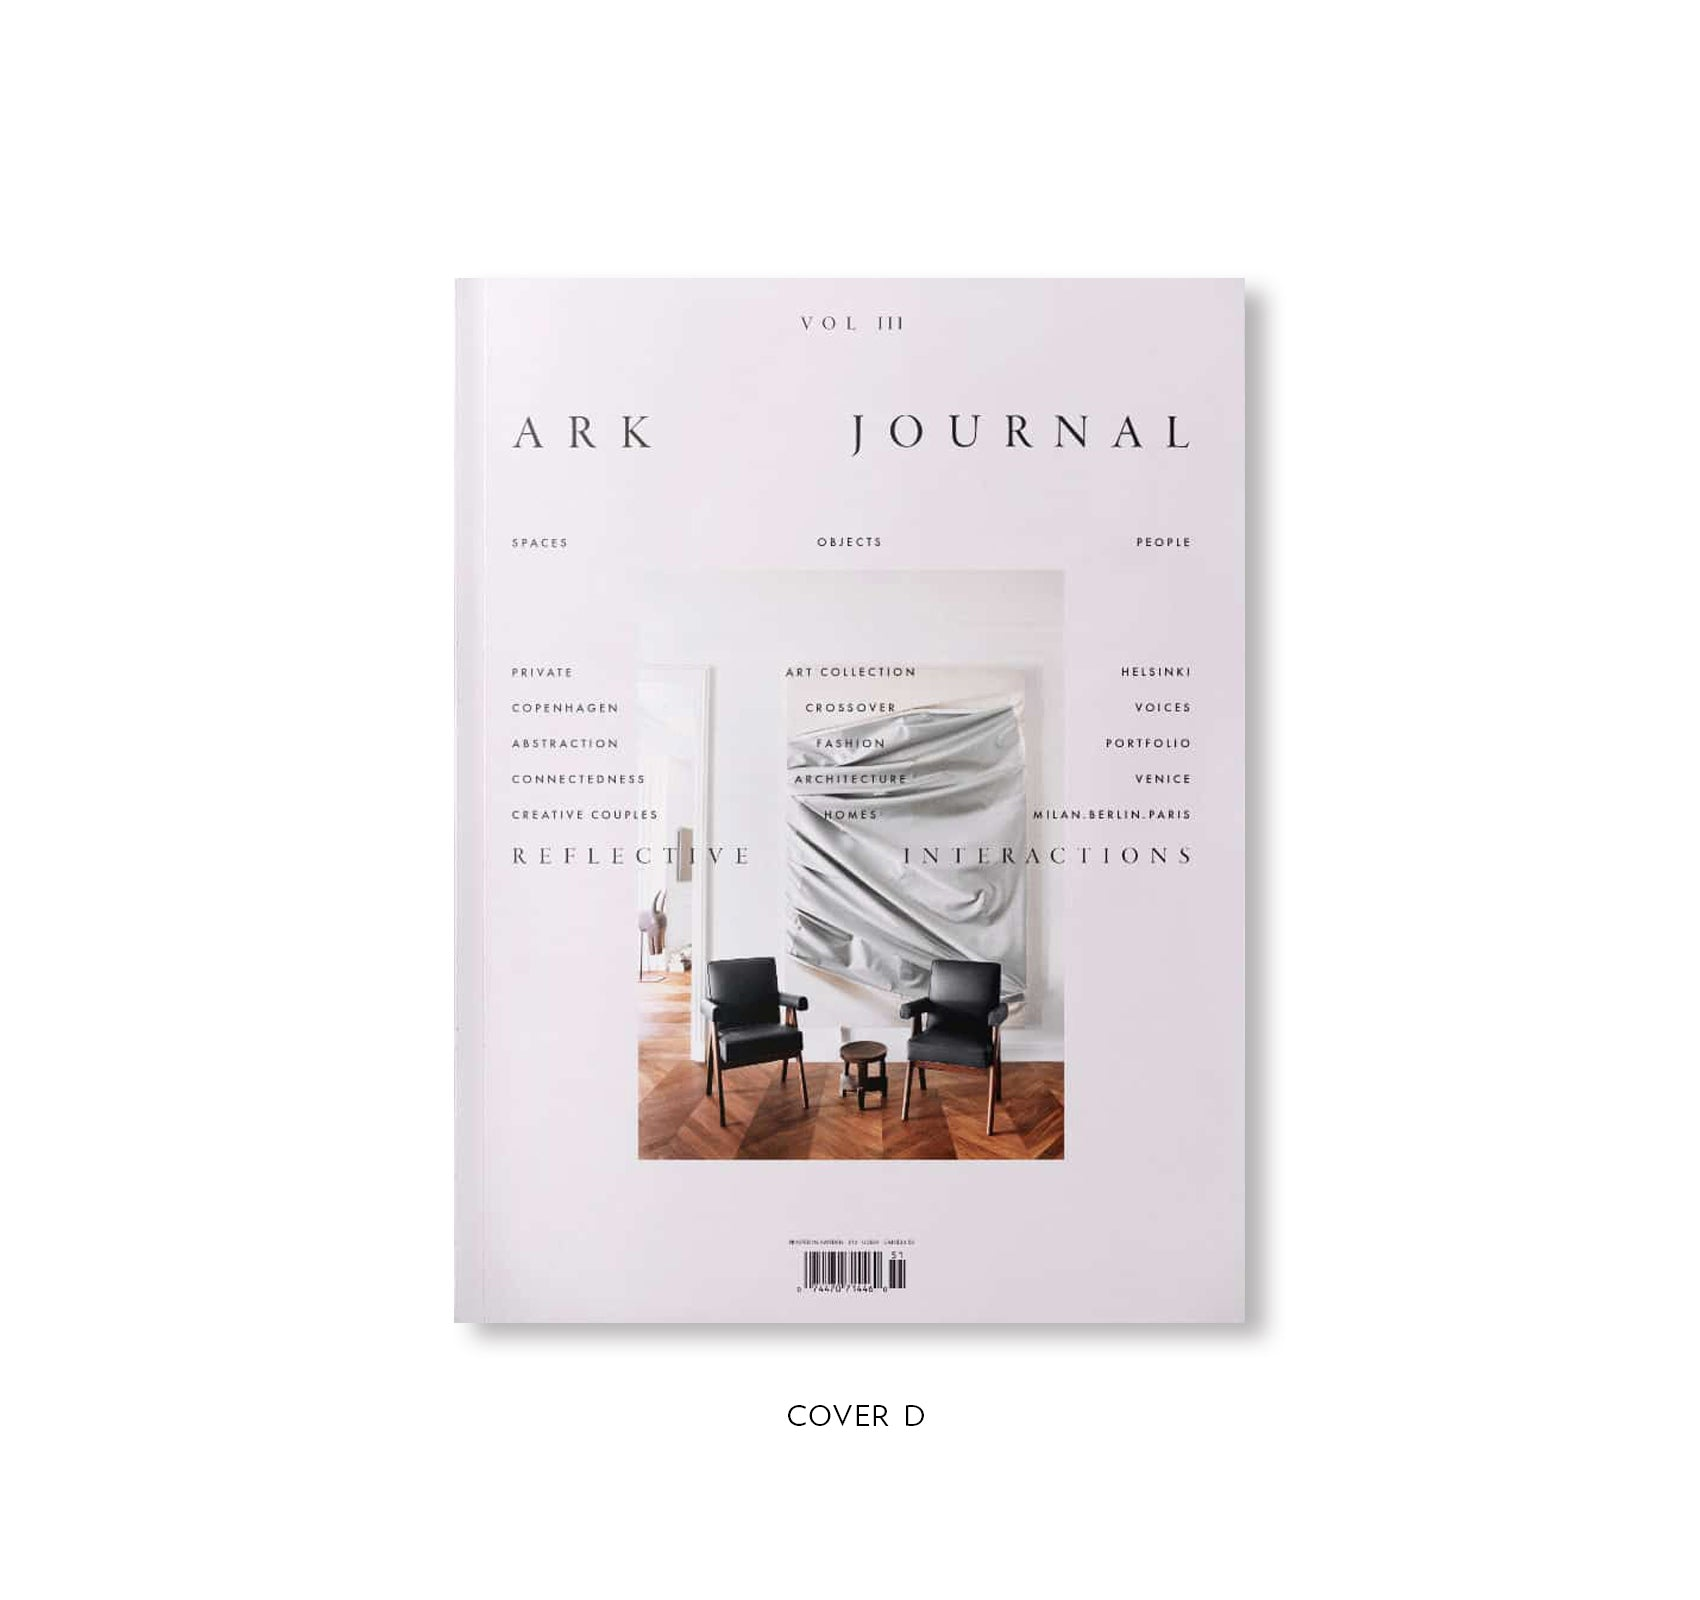 ARK JOURNAL VOLUME III SPRING/SUMMER 2020